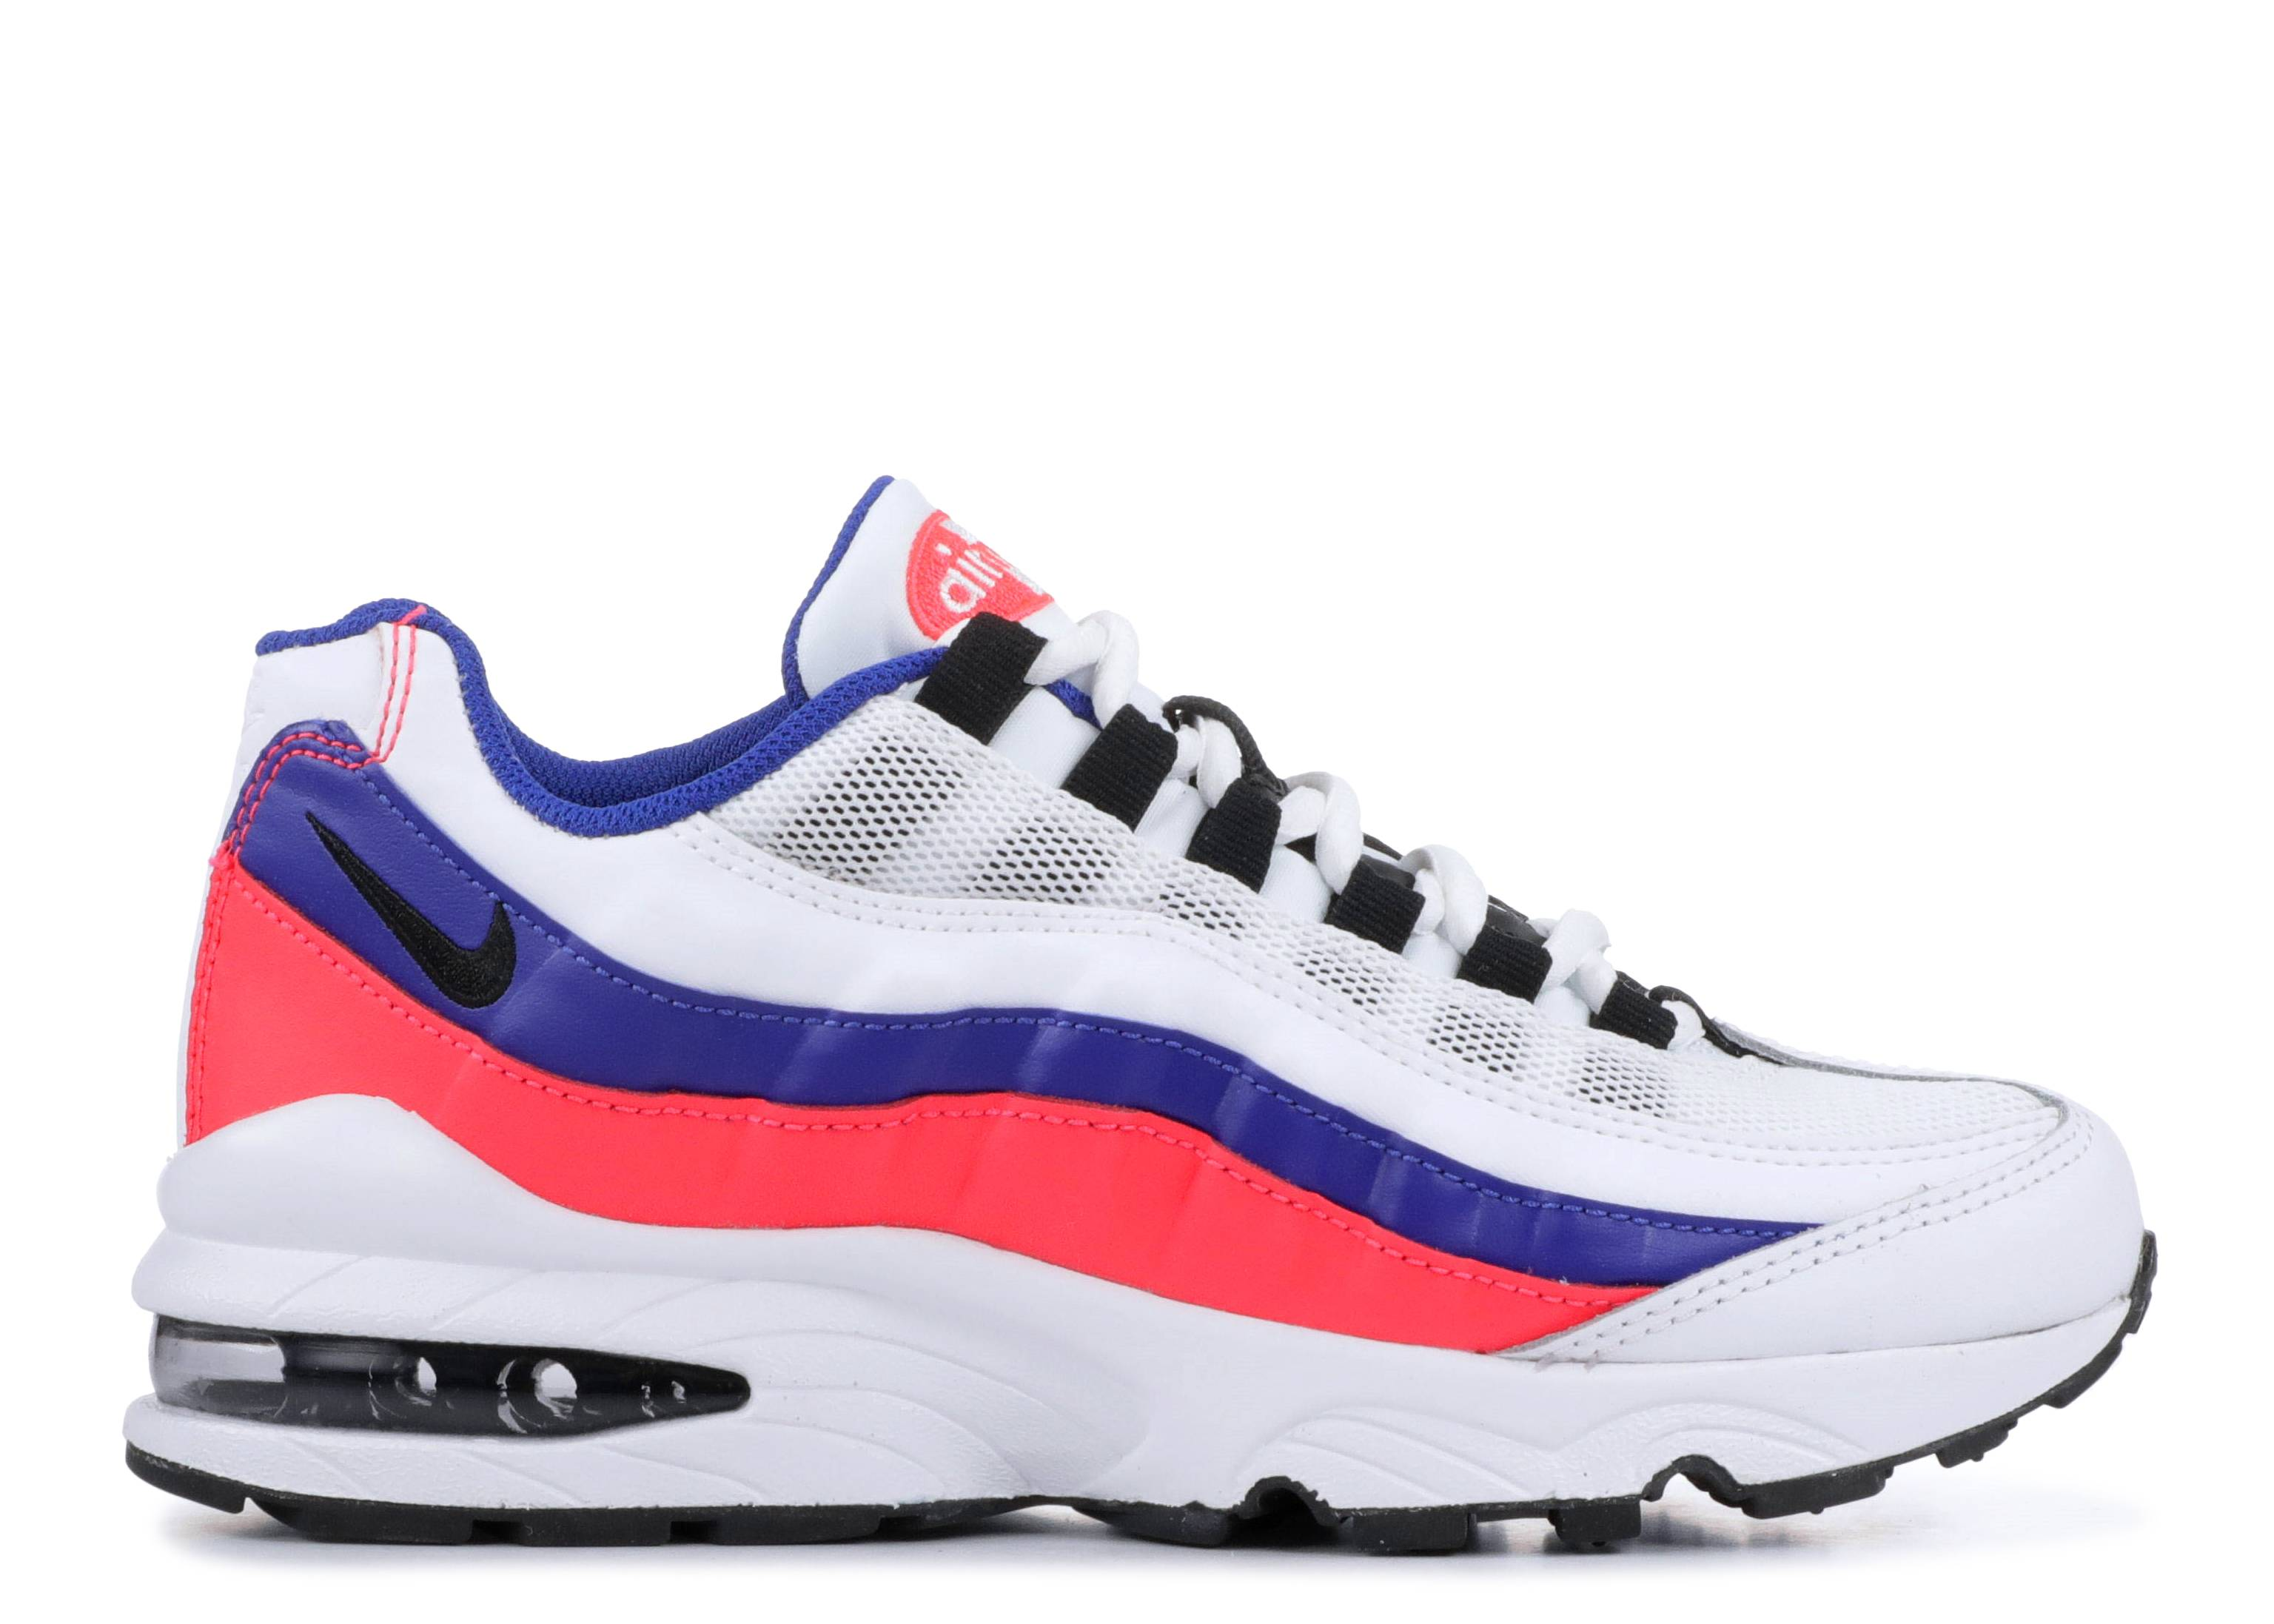 the best cheaper outlet Nike Air Max 95 (gs)